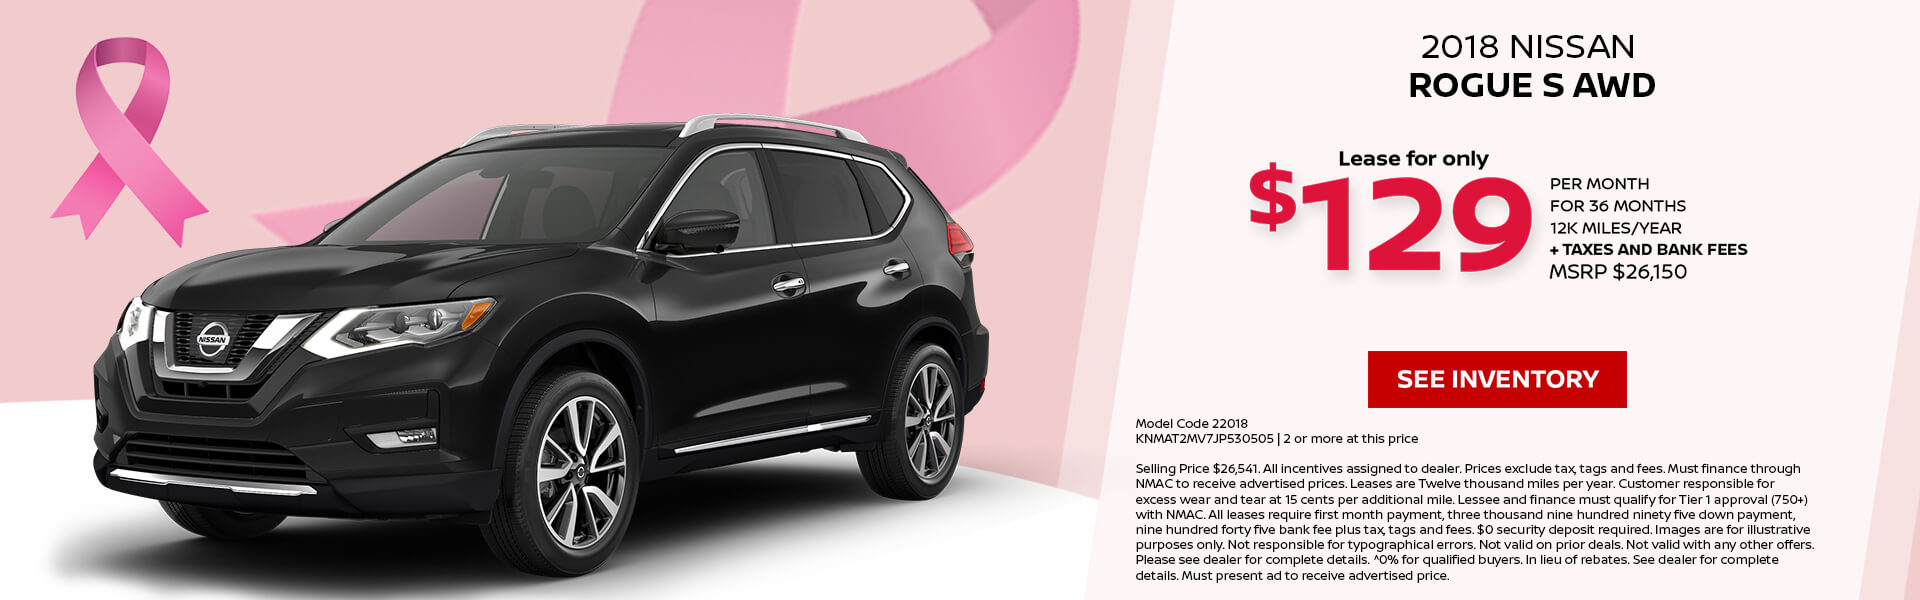 Nissan Rogue $129 Lease